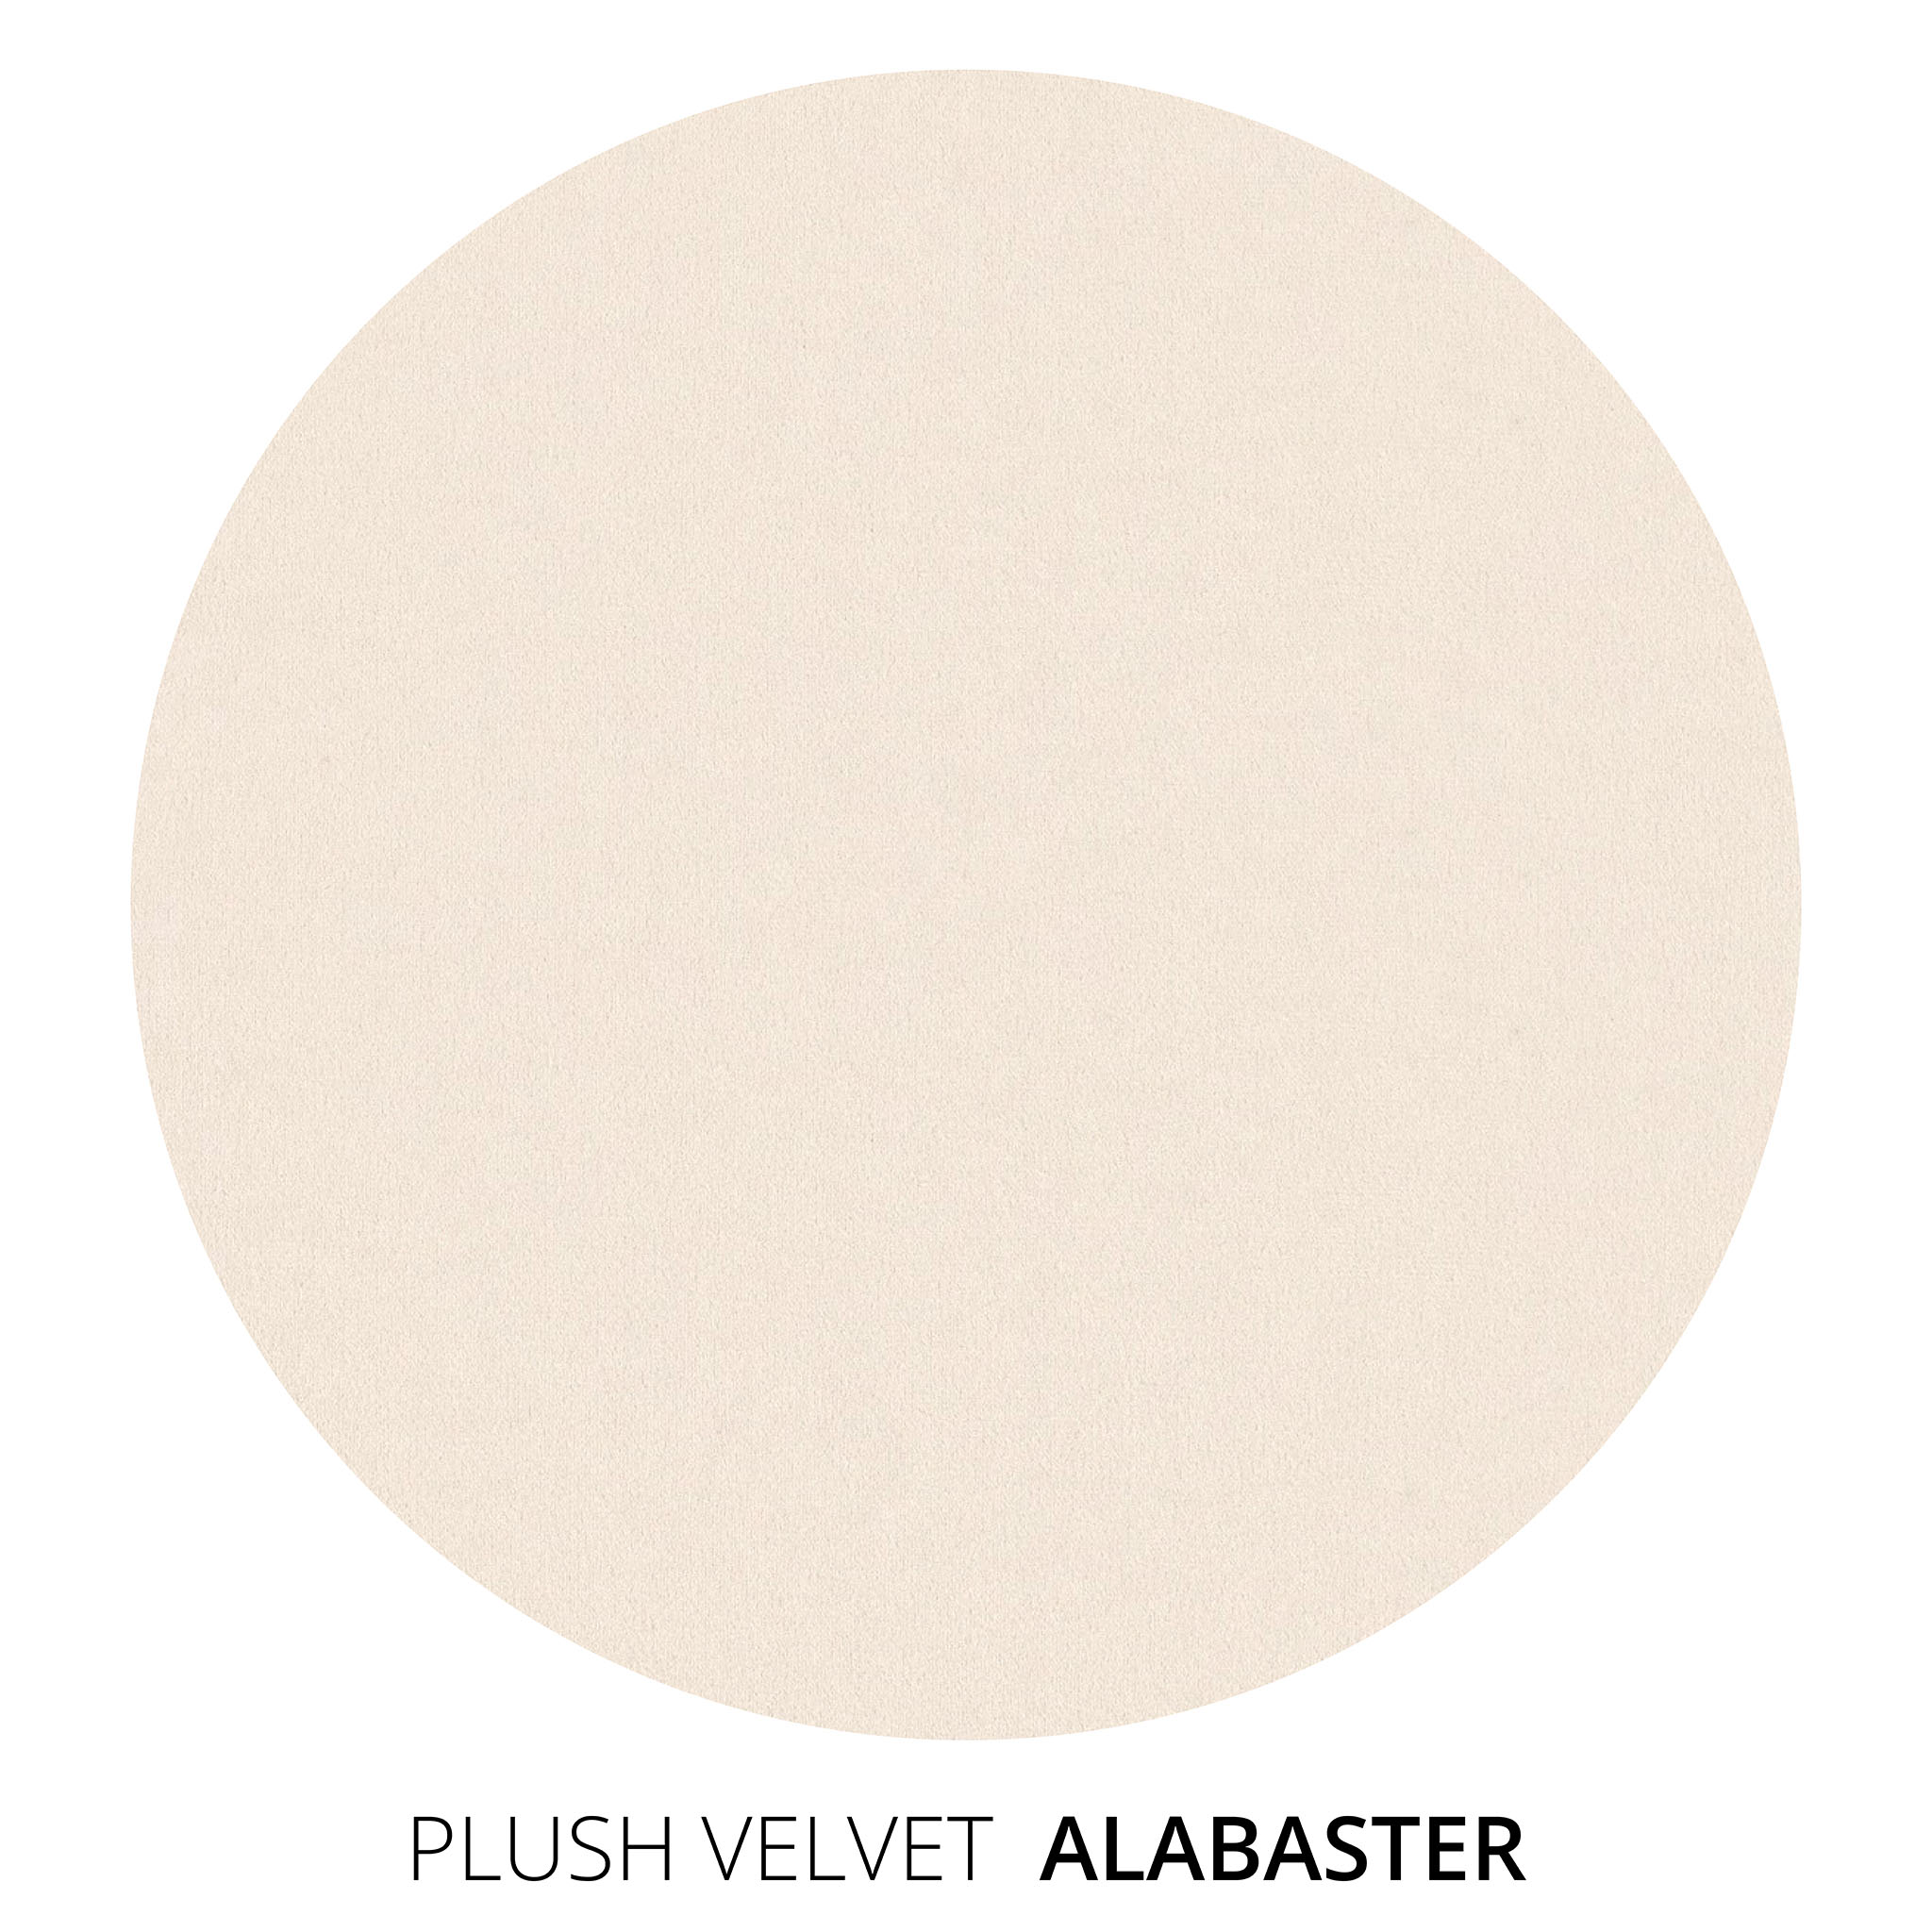 Alabaster Plush Velvet Swatch